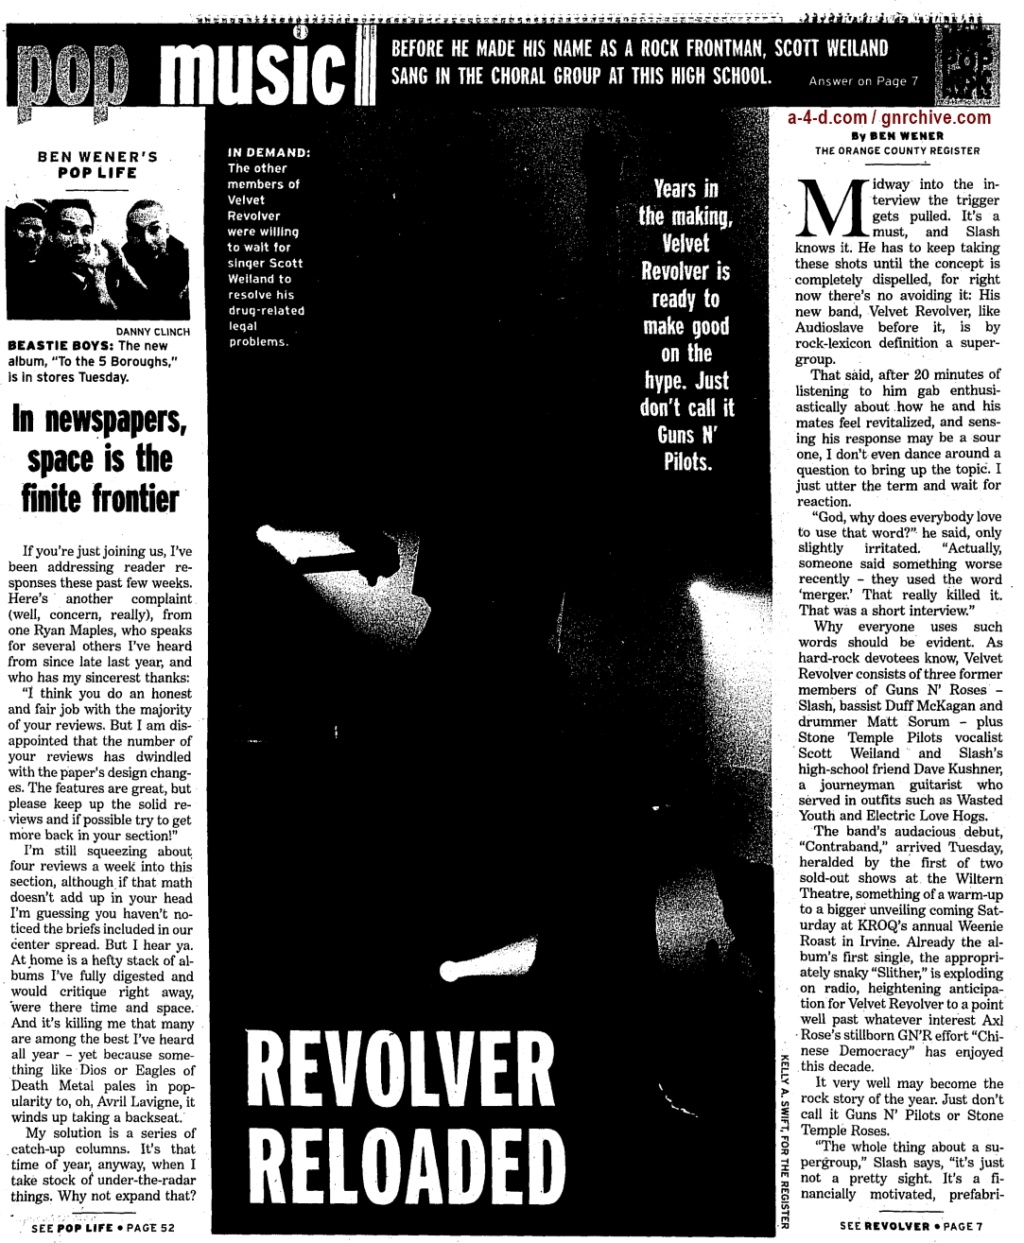 2004.06.11 - Orange County Register - Revolver Reloaded (Slash) 2004_033